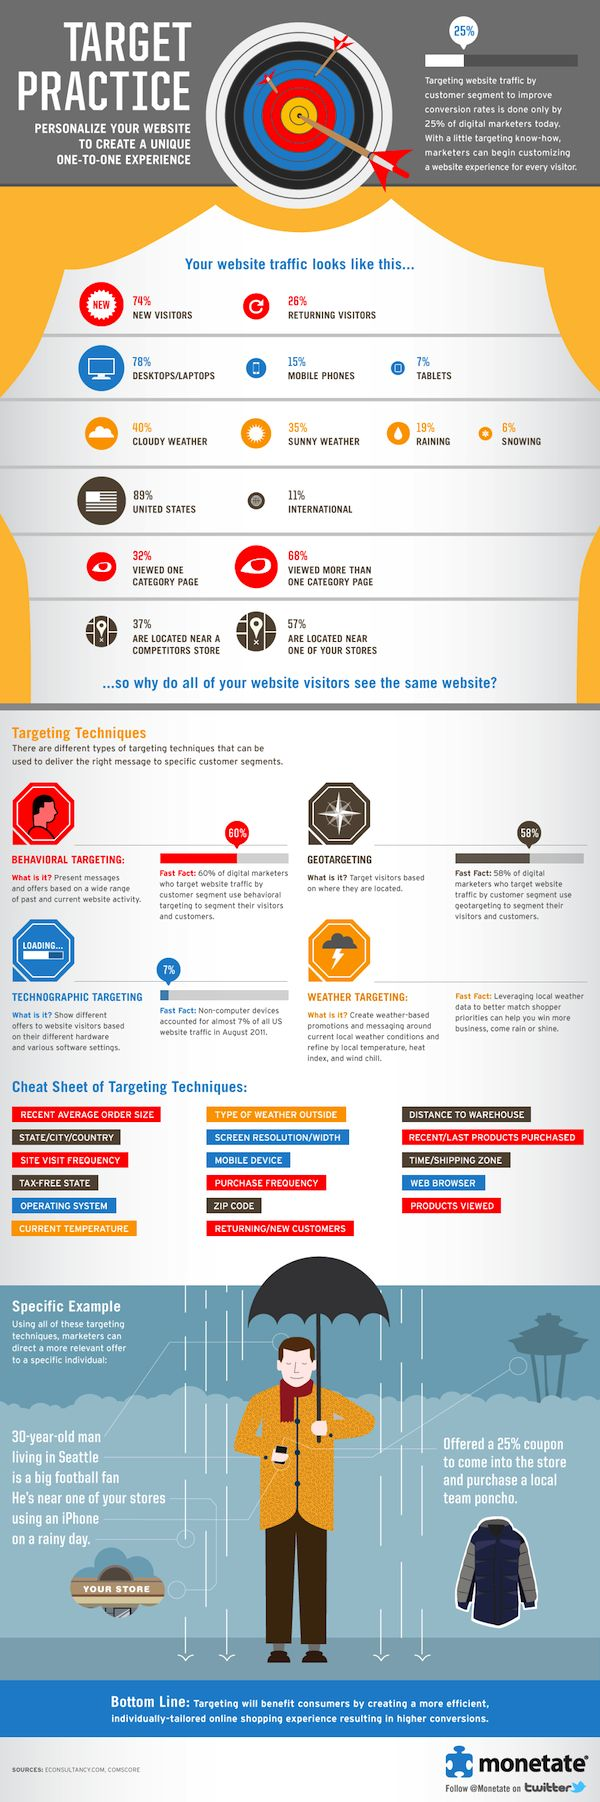 Targeting website traffic to improve conversion ratesMonet Your Website, Experiments Infographic, Website Traffic, Target Practice, Socialmedia Marketing, Target Website, Social Media, Unique One To On, One To On Experiments